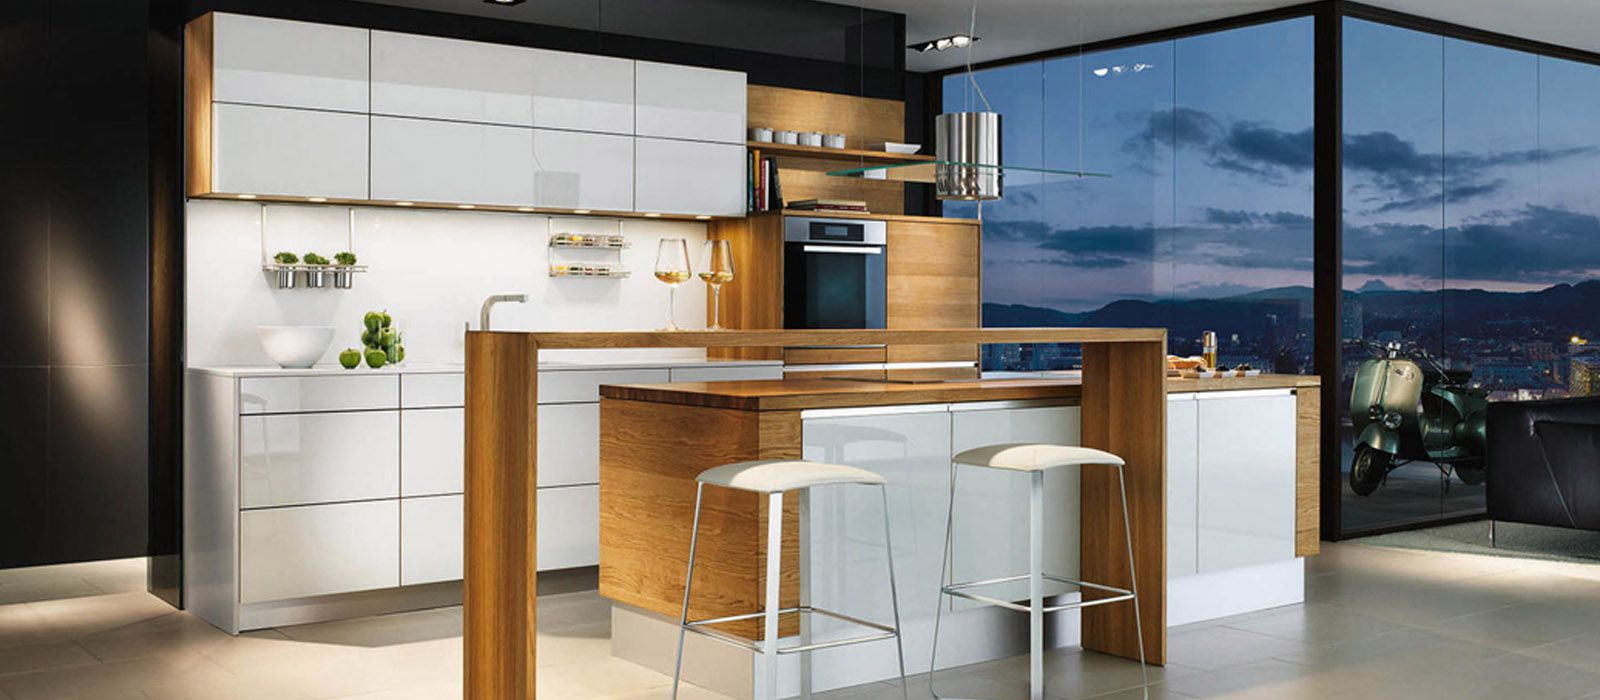 germankitchencenter german kitchen cabinets Modern Kitchen Cabinets German Kitchen Cabinets Modern Kitchens Team 7 Kitchen Leicht Kitchen